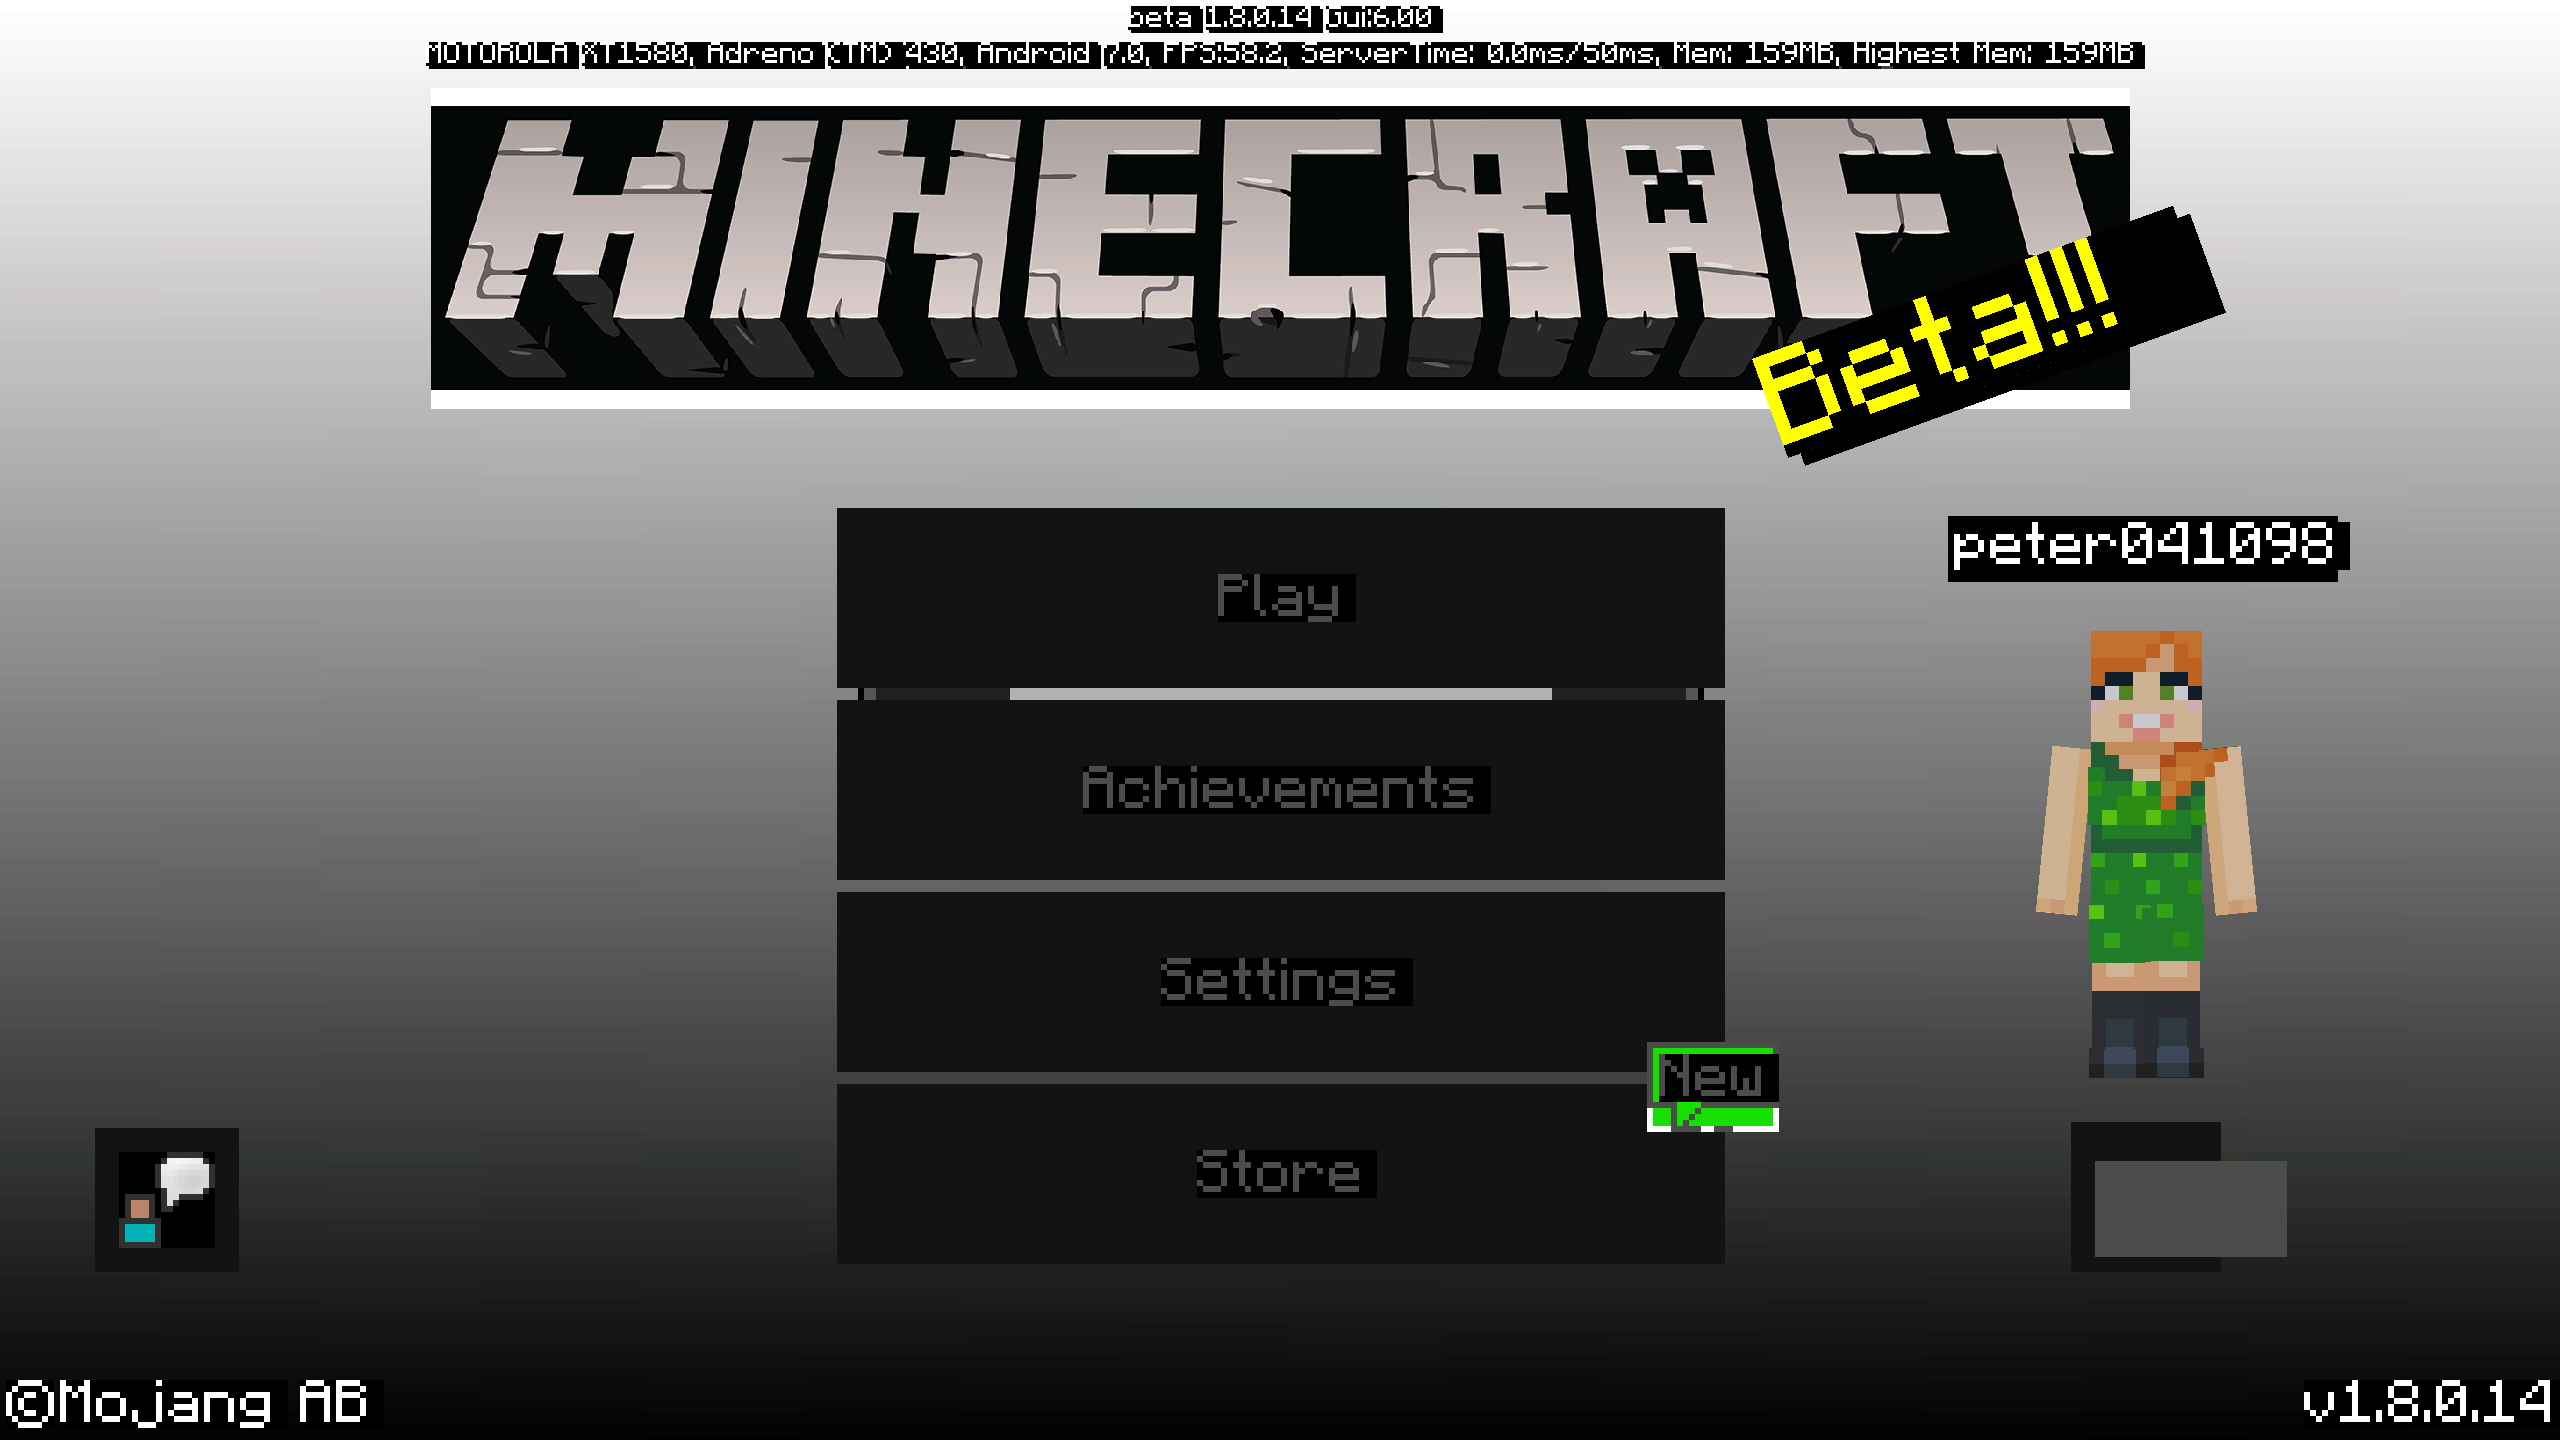 MCPE-39031] Main menu glitch - the home screen has black corrupted